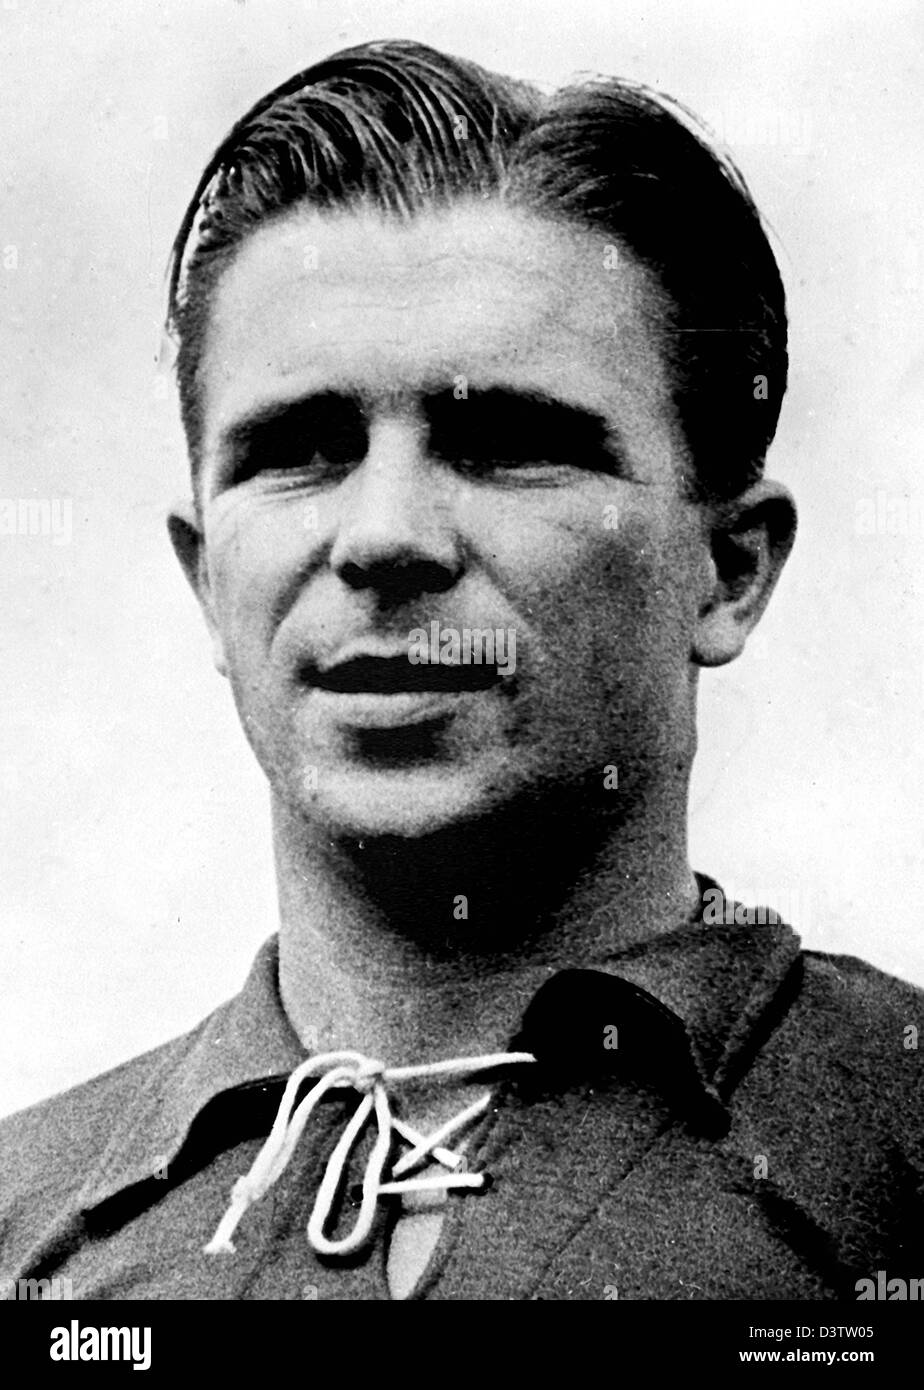 ef6d7035ac0 (FILE) - Hungarian soccer legend Ferenc Puskas pictured at the World Cup  1954 in Switzerland